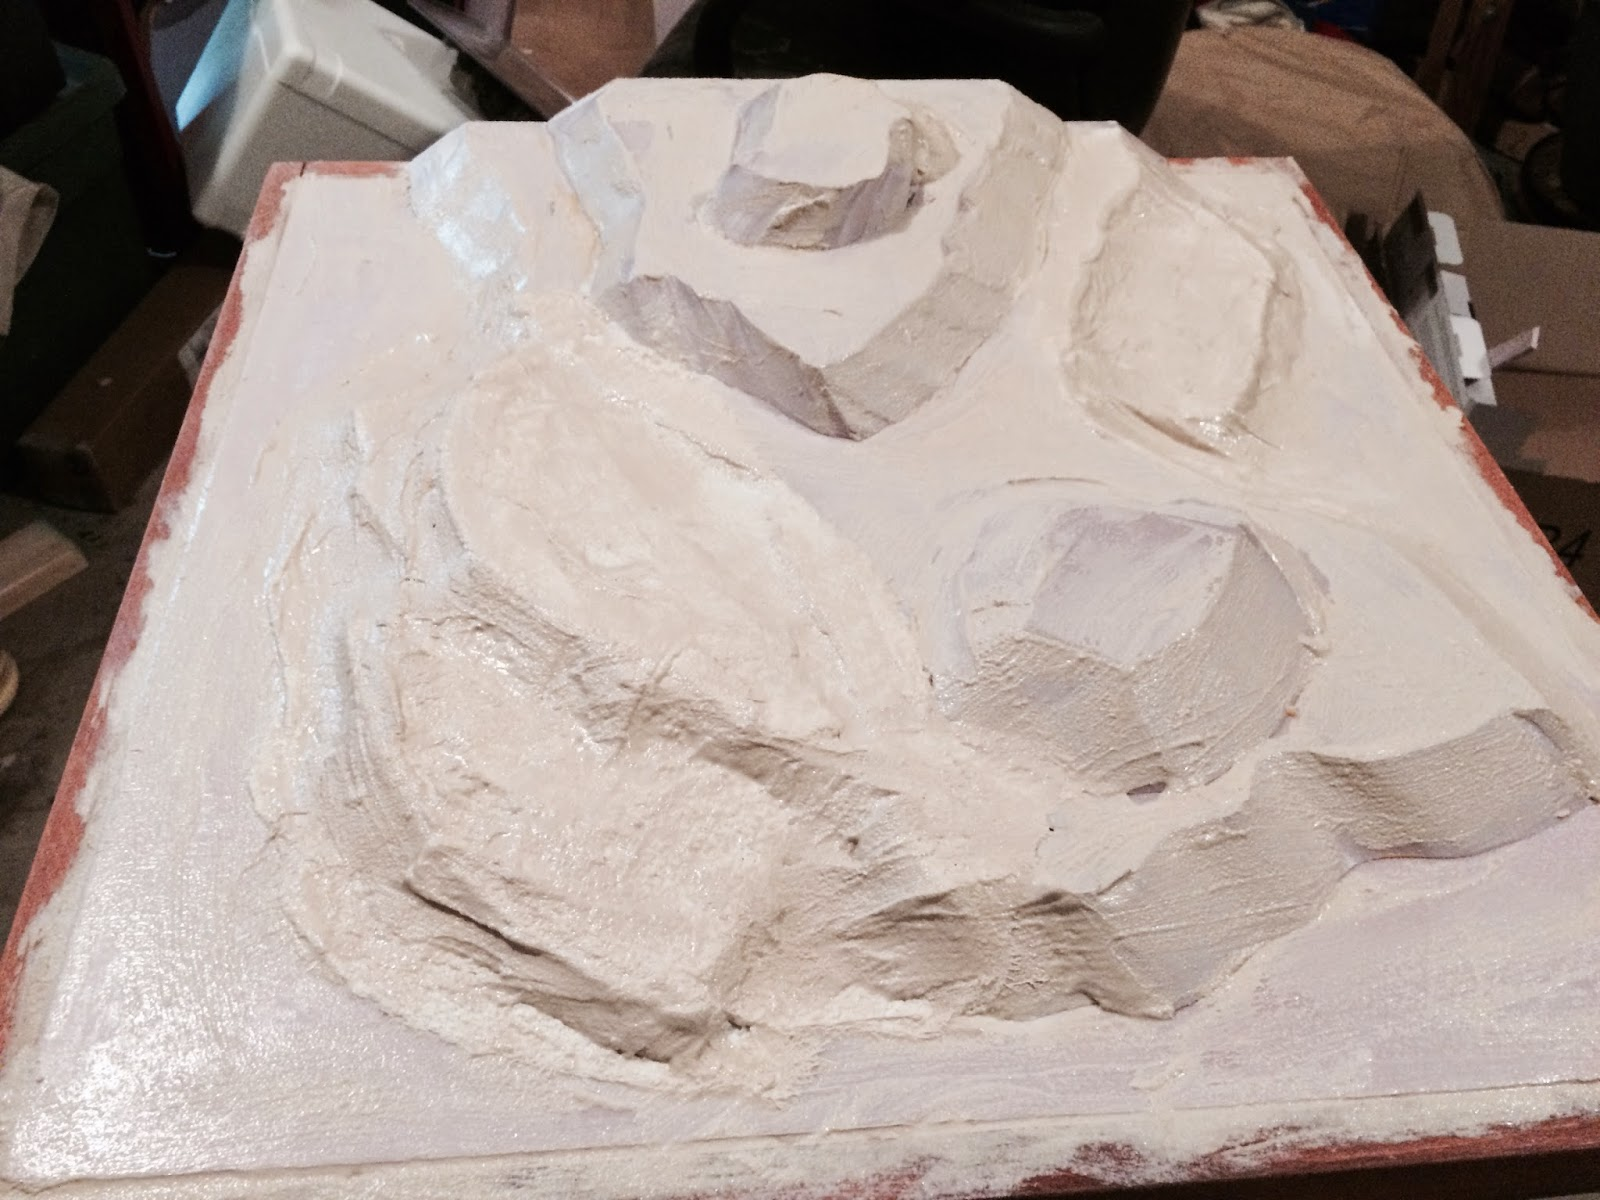 Lair of the uber geek: sectional terrain: mountains of foam